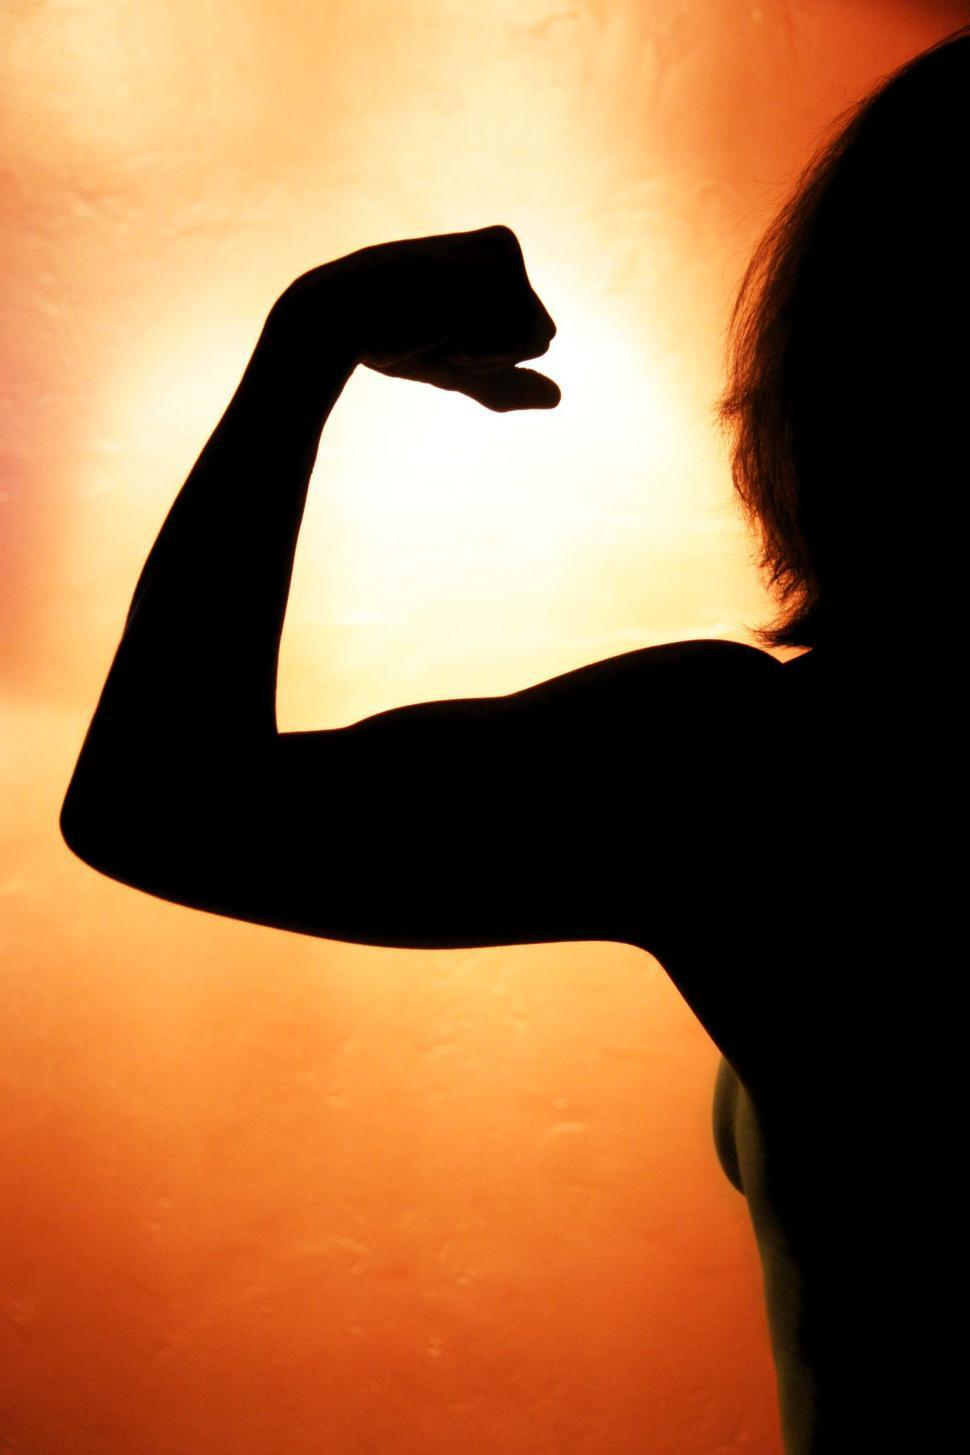 Free image of Silhouette of woman flexing biceps